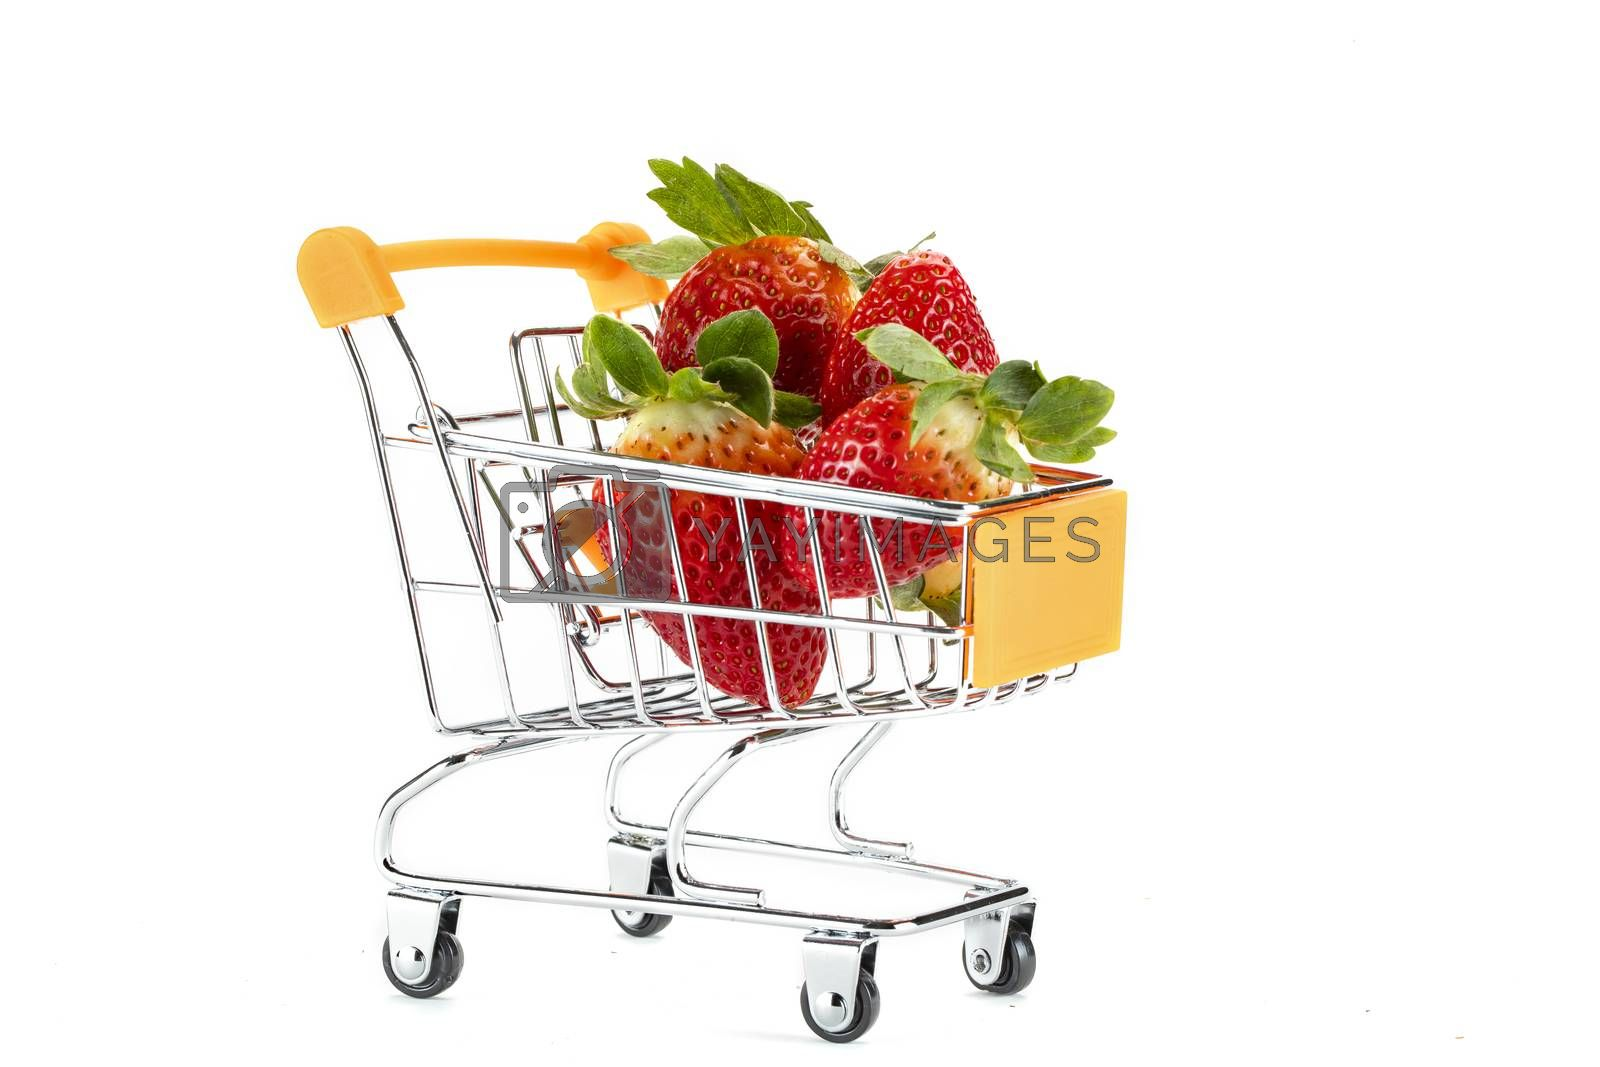 A bunch of red fresh strawberries on a toy shopping cart. Isolated on white background.